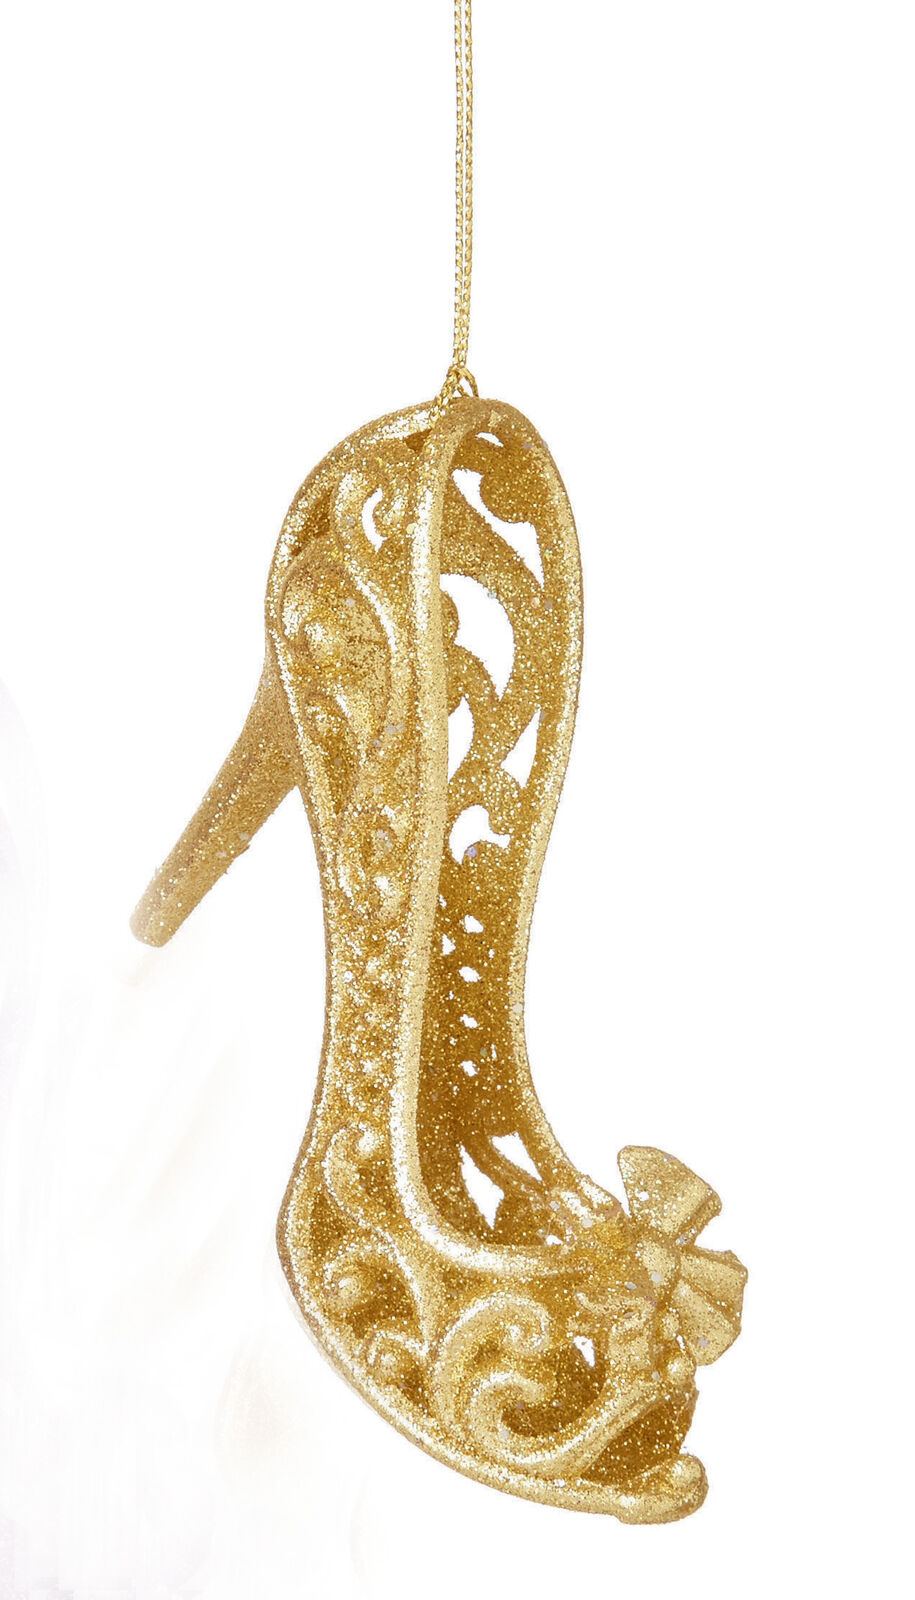 3 X GOLD 3D Shoe Hanging Decorations Baubles Christmas Tree Hanging ...